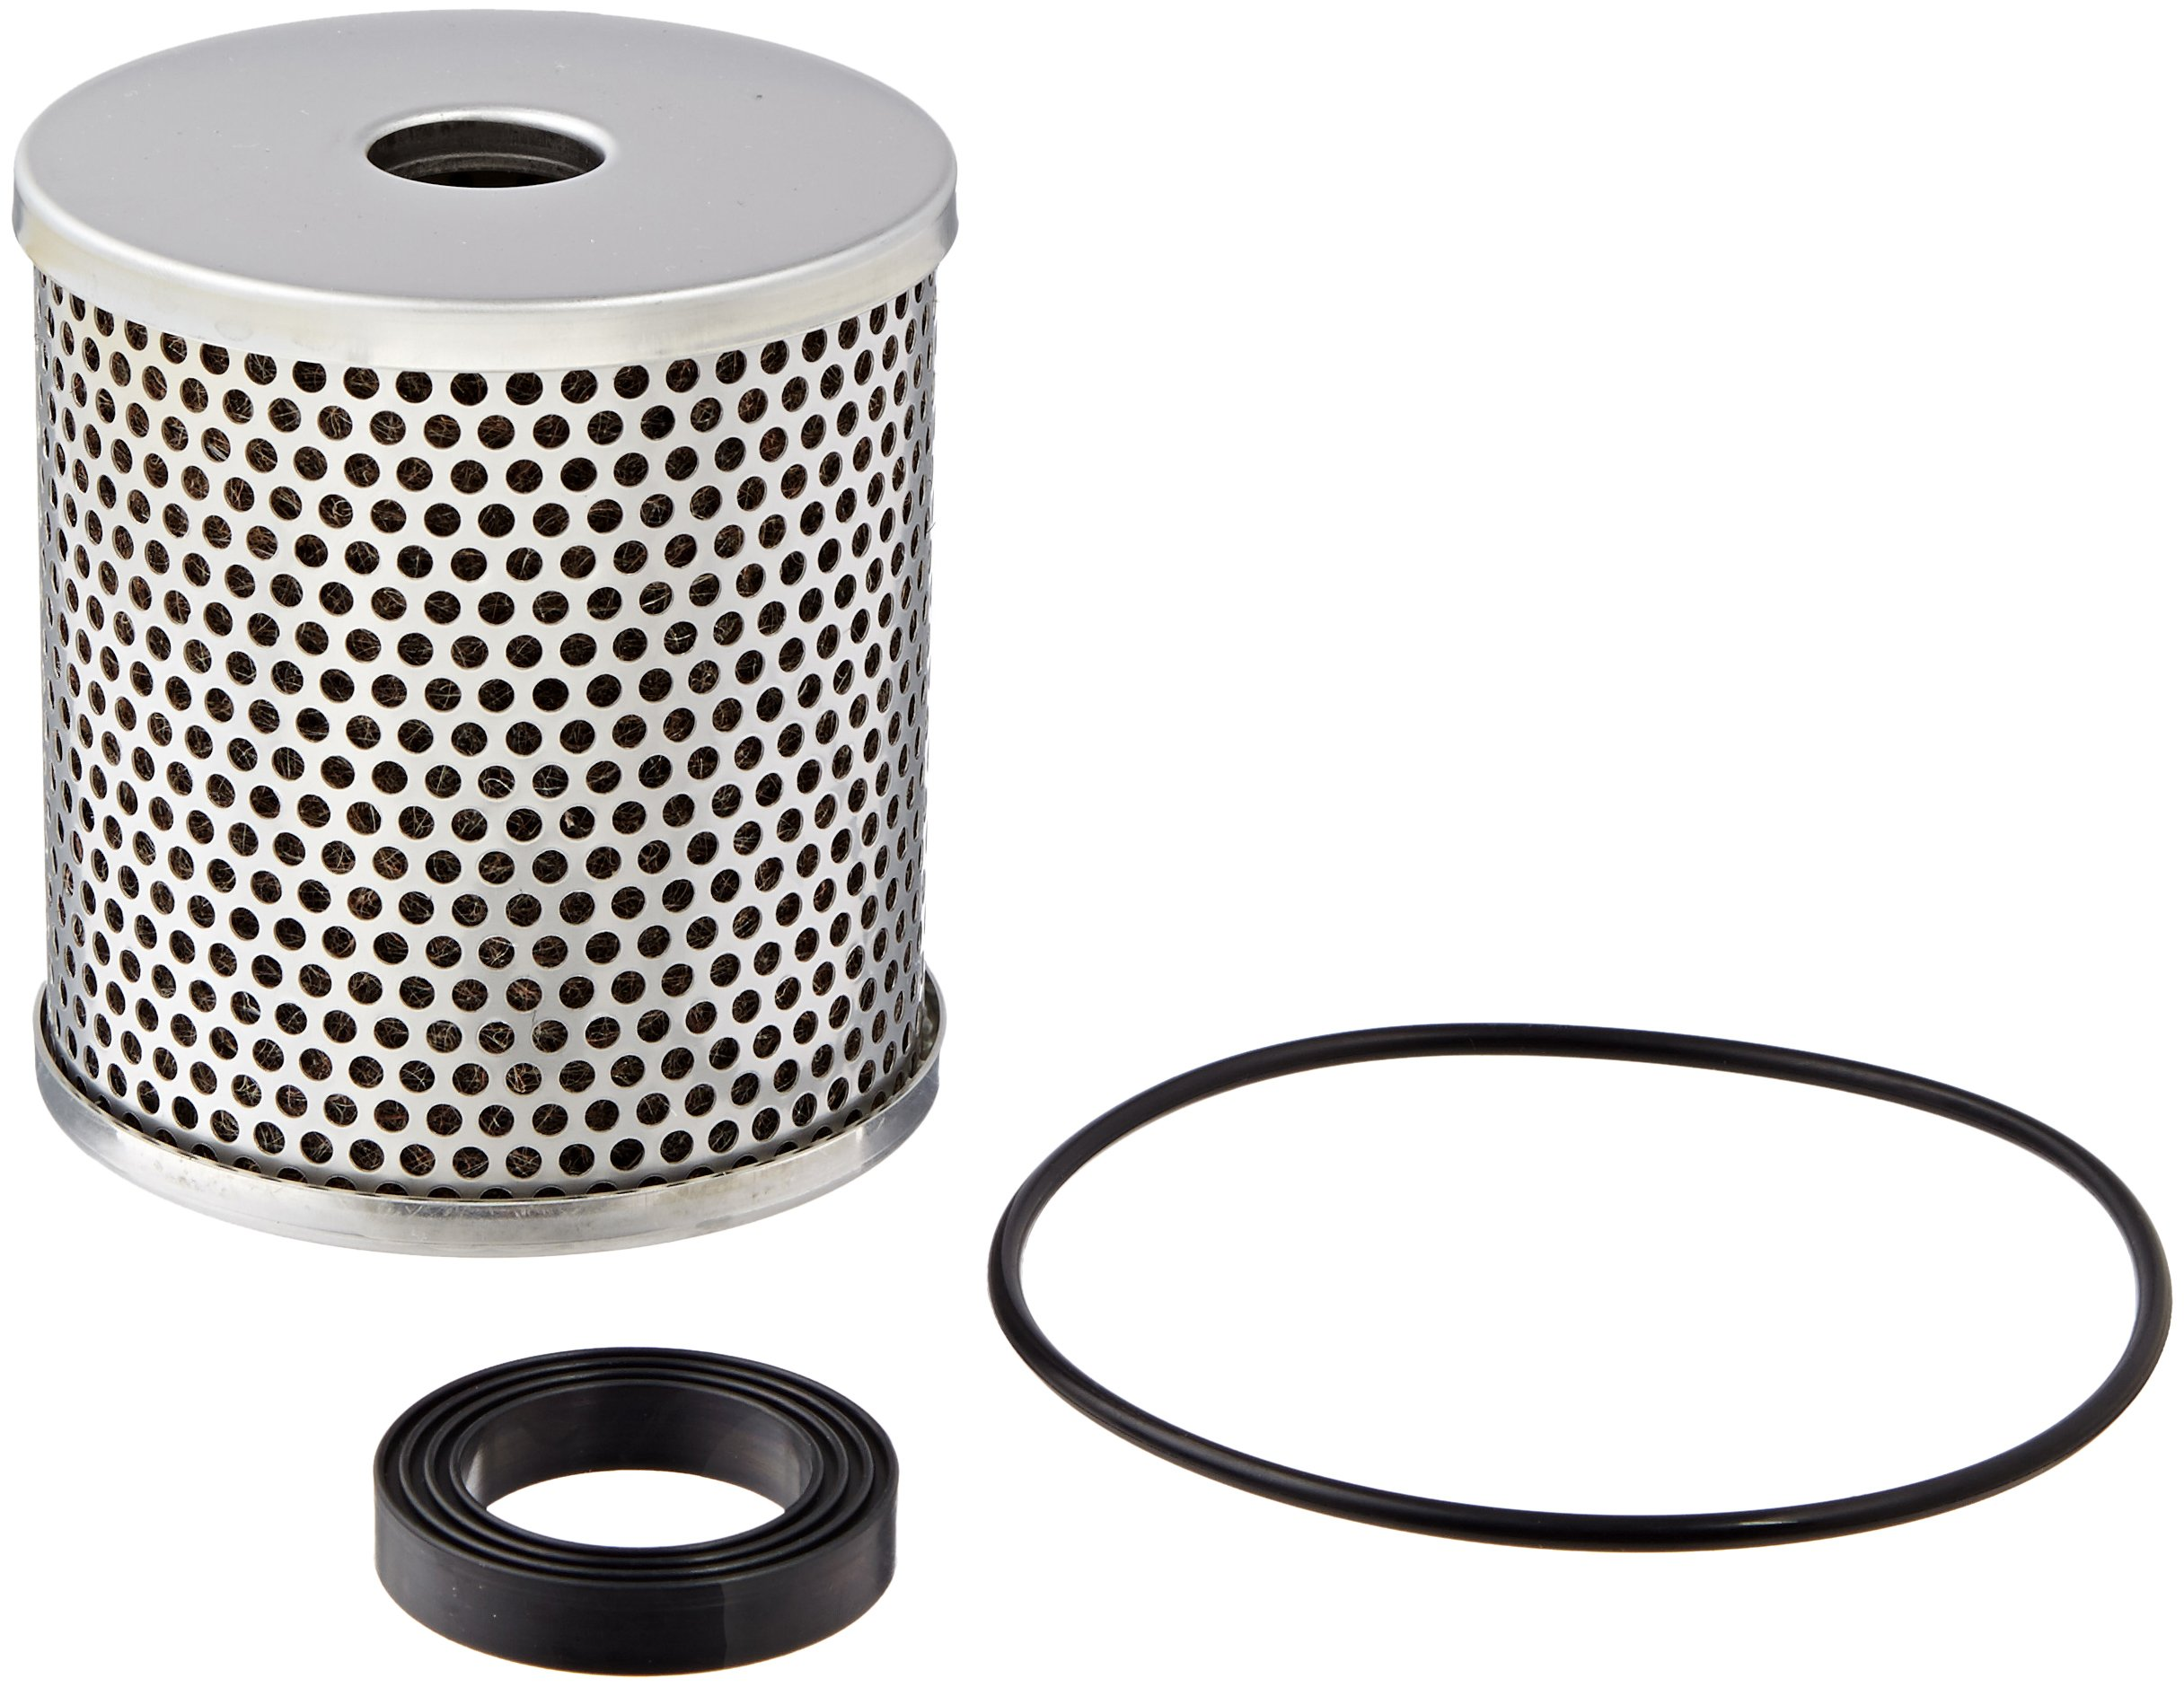 SMC AMG-EL450 Water Separator Replacement Element, For use with AMG450